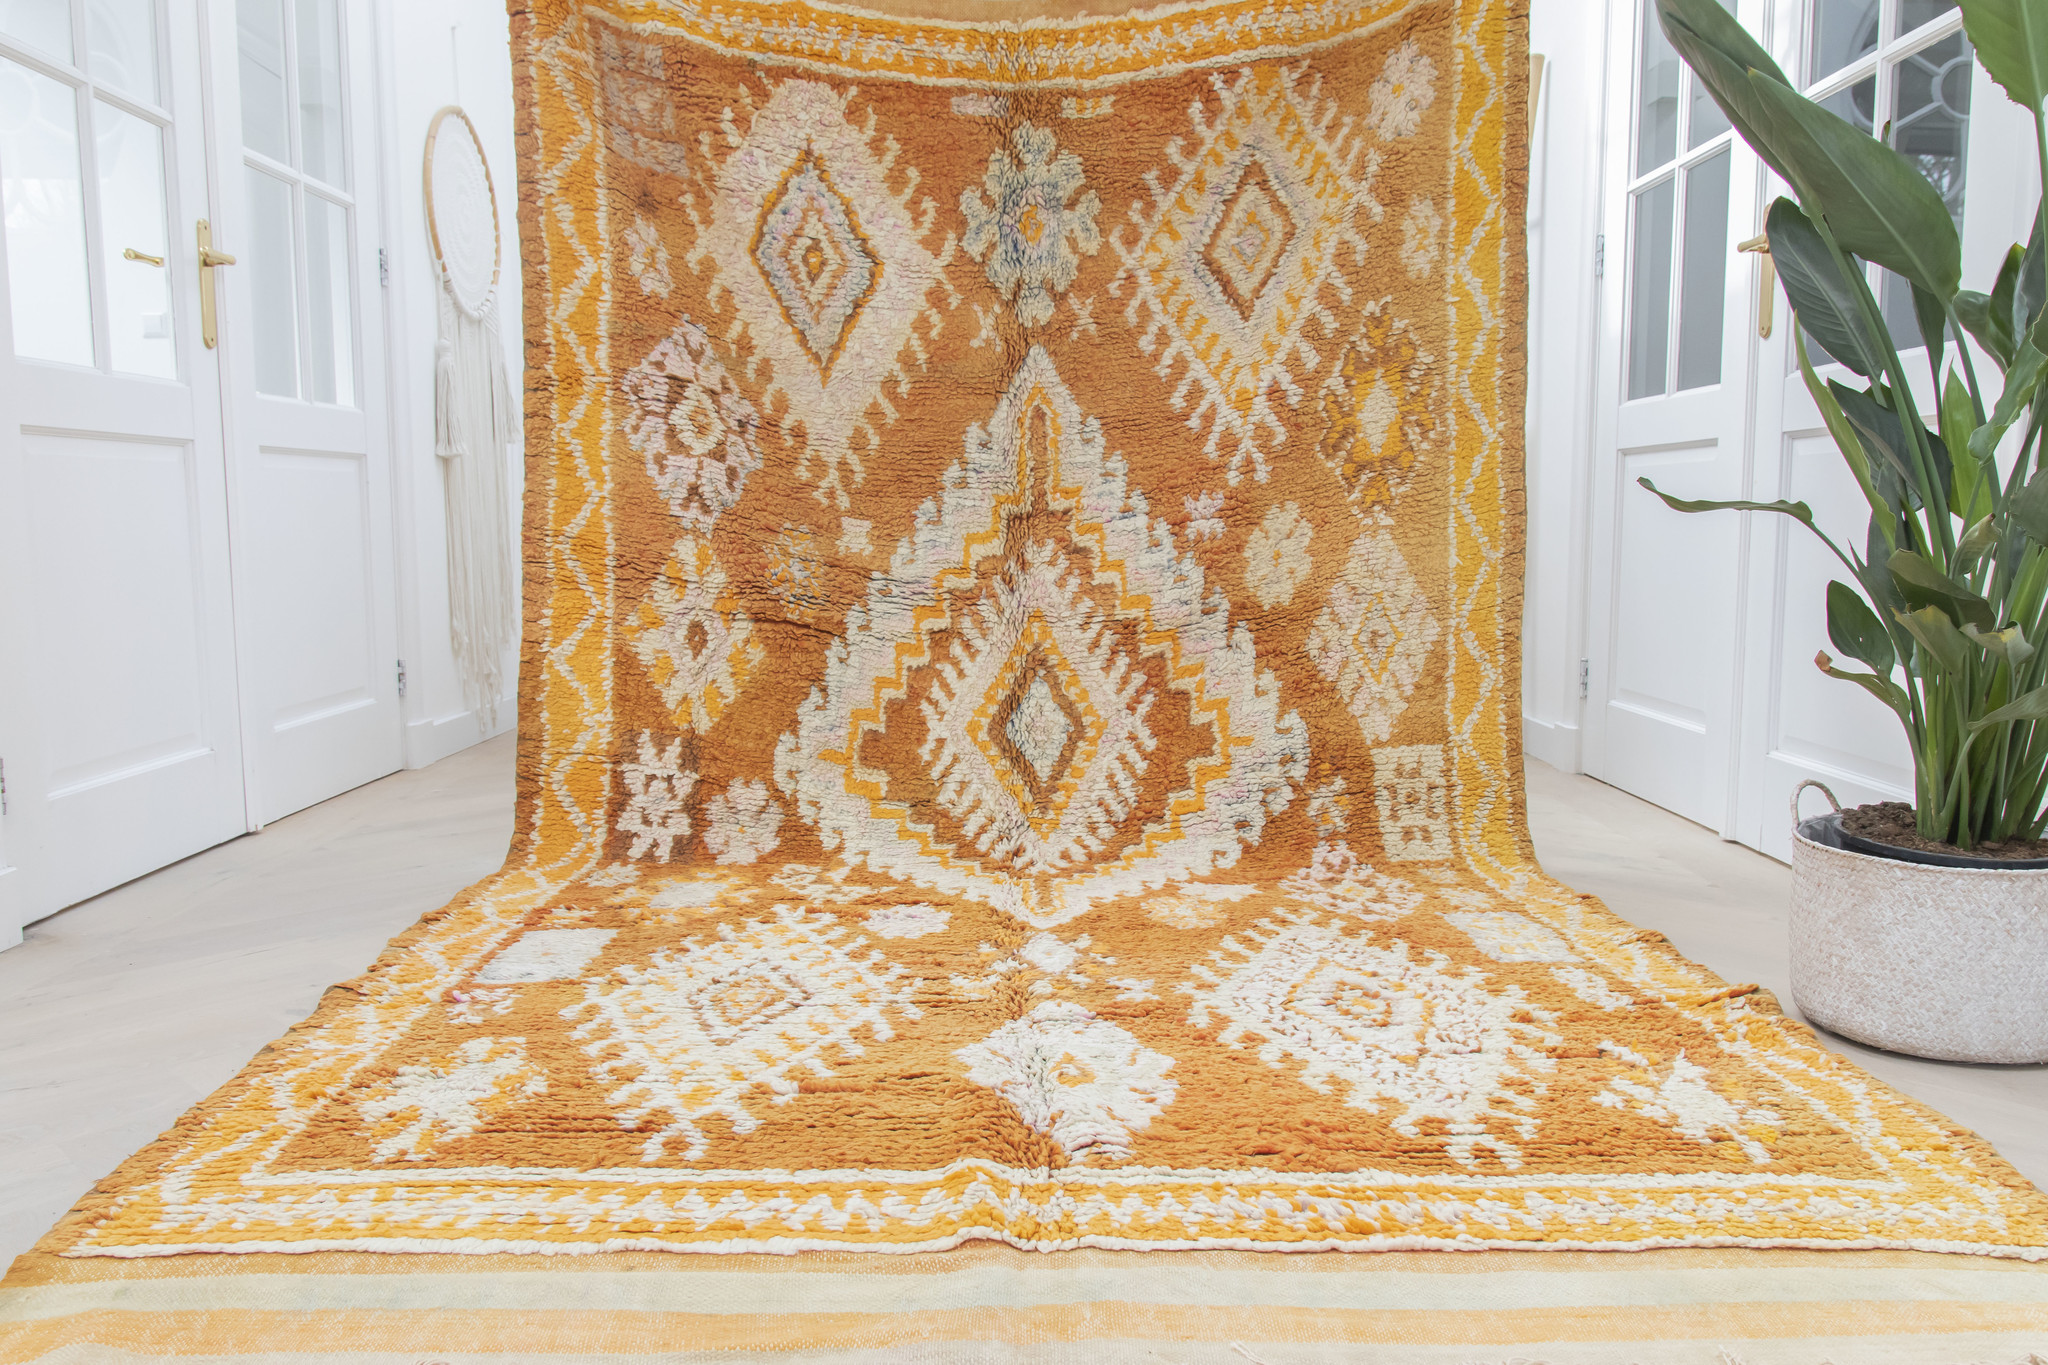 Simply Pure Handknotted Vintage Boujaad berber rug from Morocco 177 x 337 cm